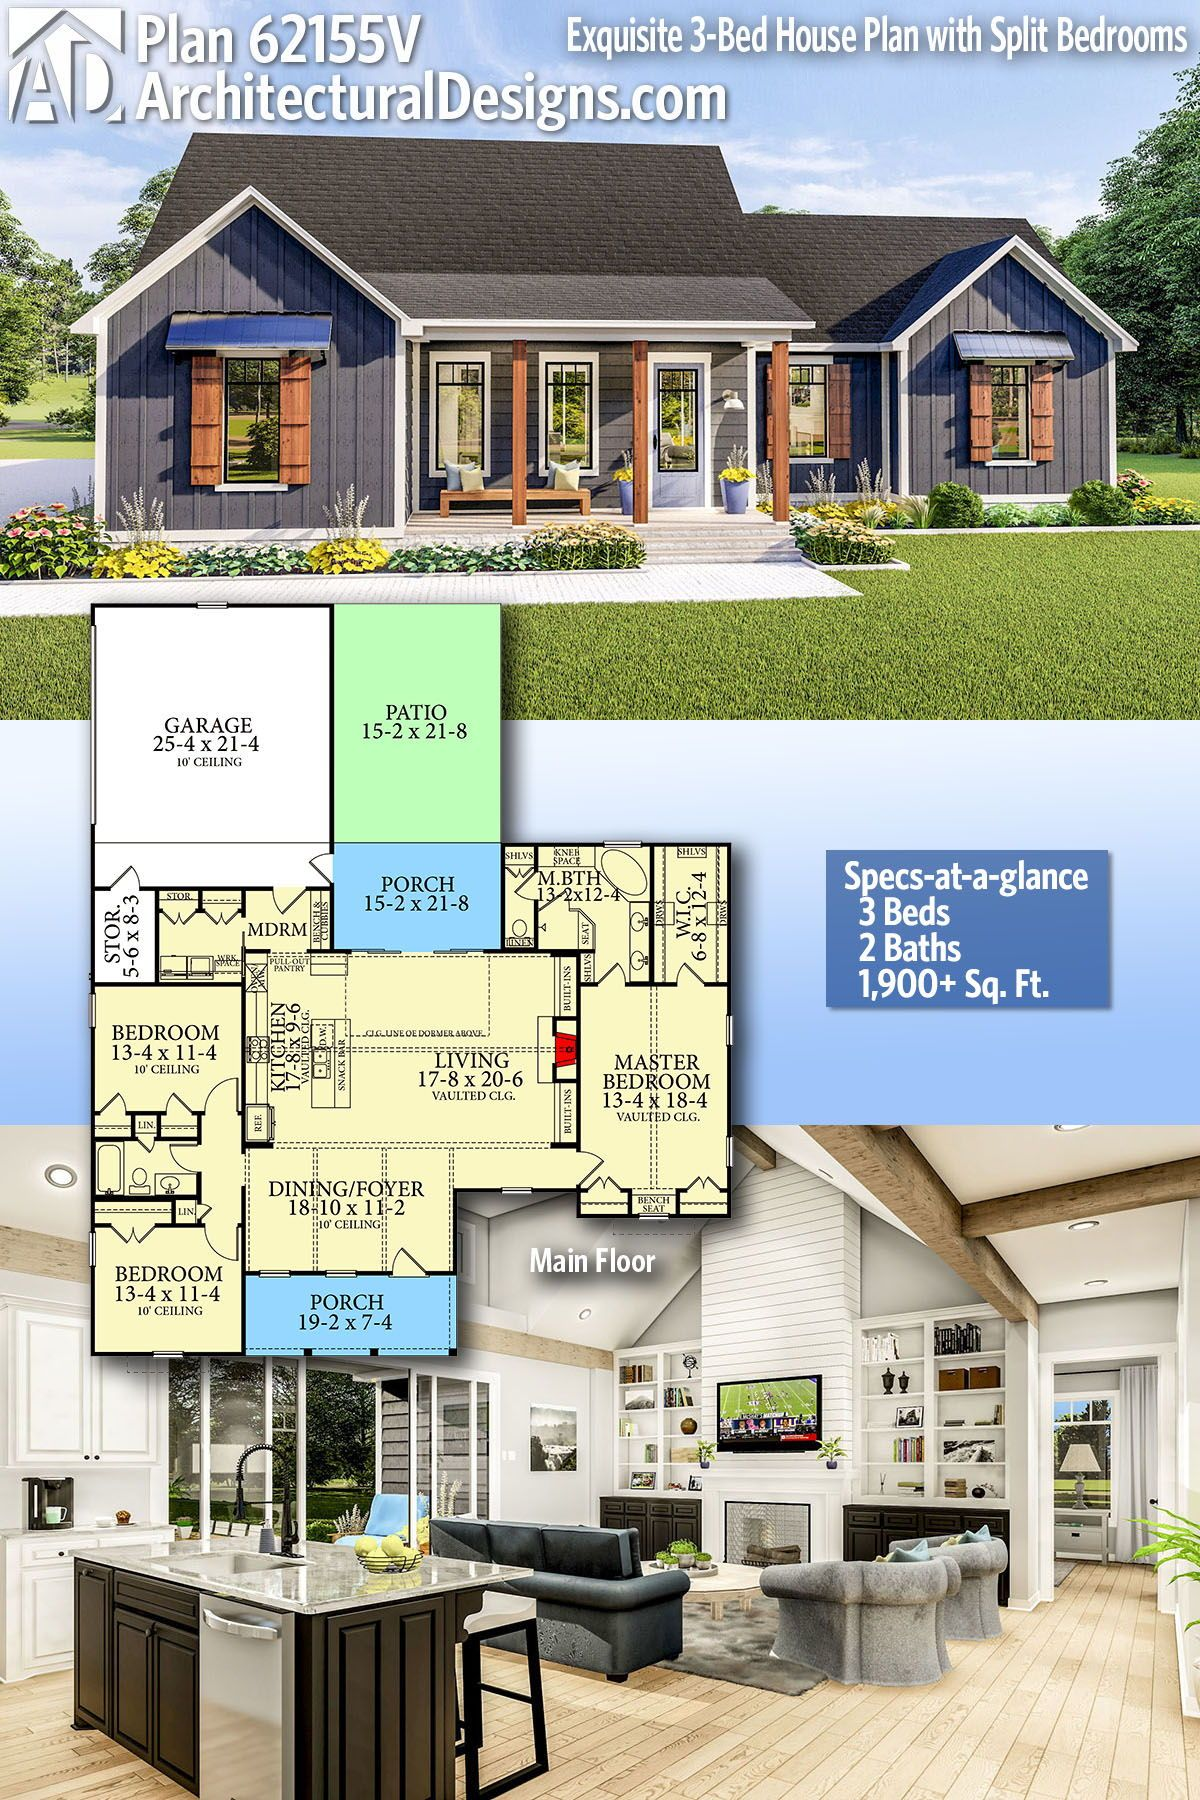 Architectural Designs Home Plan 62155V gives you 3 bedrooms, 2 baths and 1,900+ sq. ft. Ready when you are! Where do YOU want to build? #62155V #adhouseplans #architecturaldesigns #houseplans #architecture #newhome #modern #farmhouse #newconstruction #newhouse  #homeplans #architecture #home #homesweethome